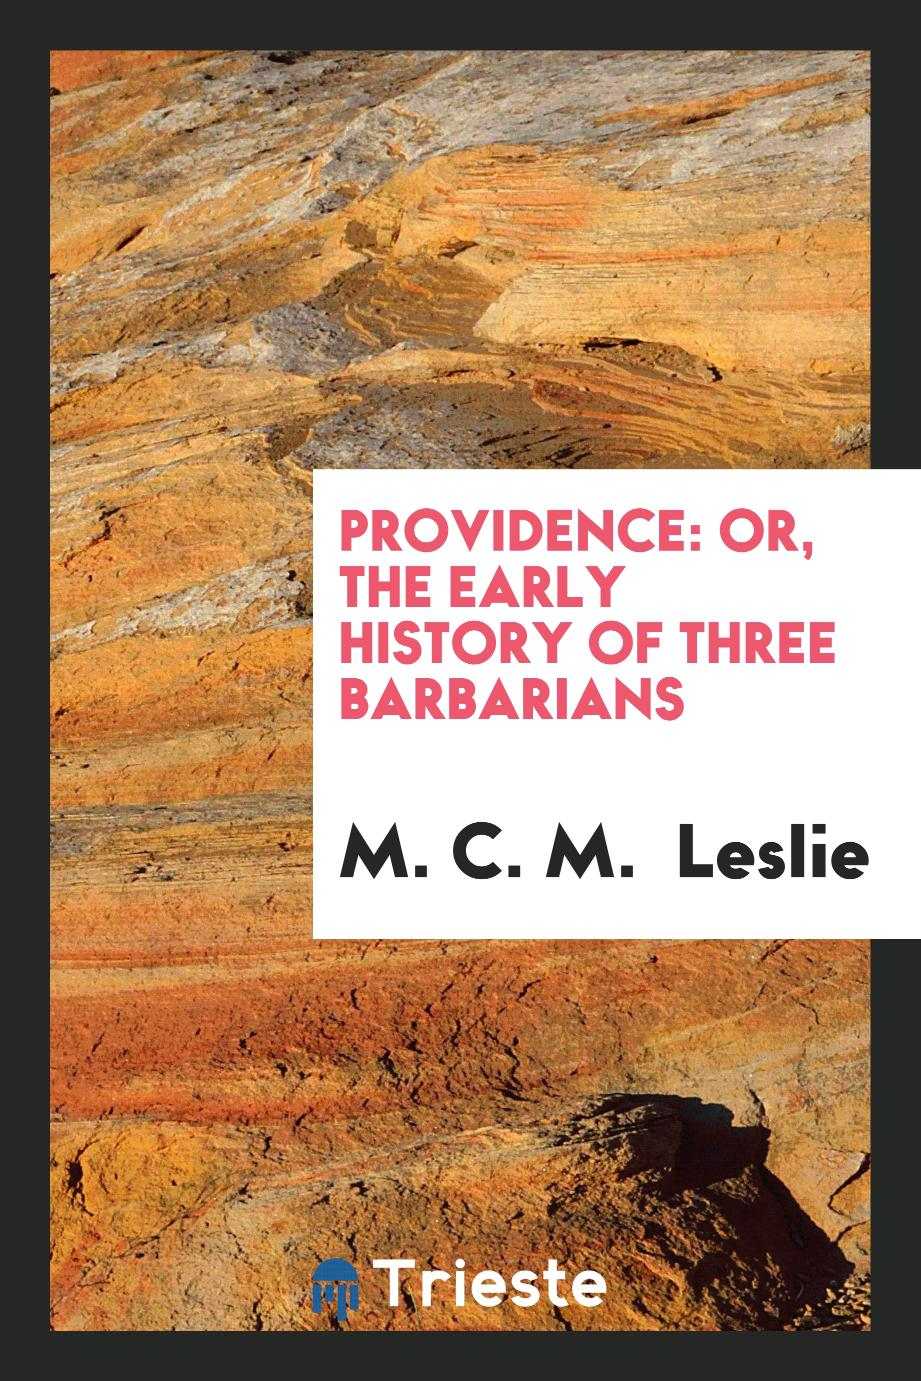 Providence: Or, The Early History of Three Barbarians